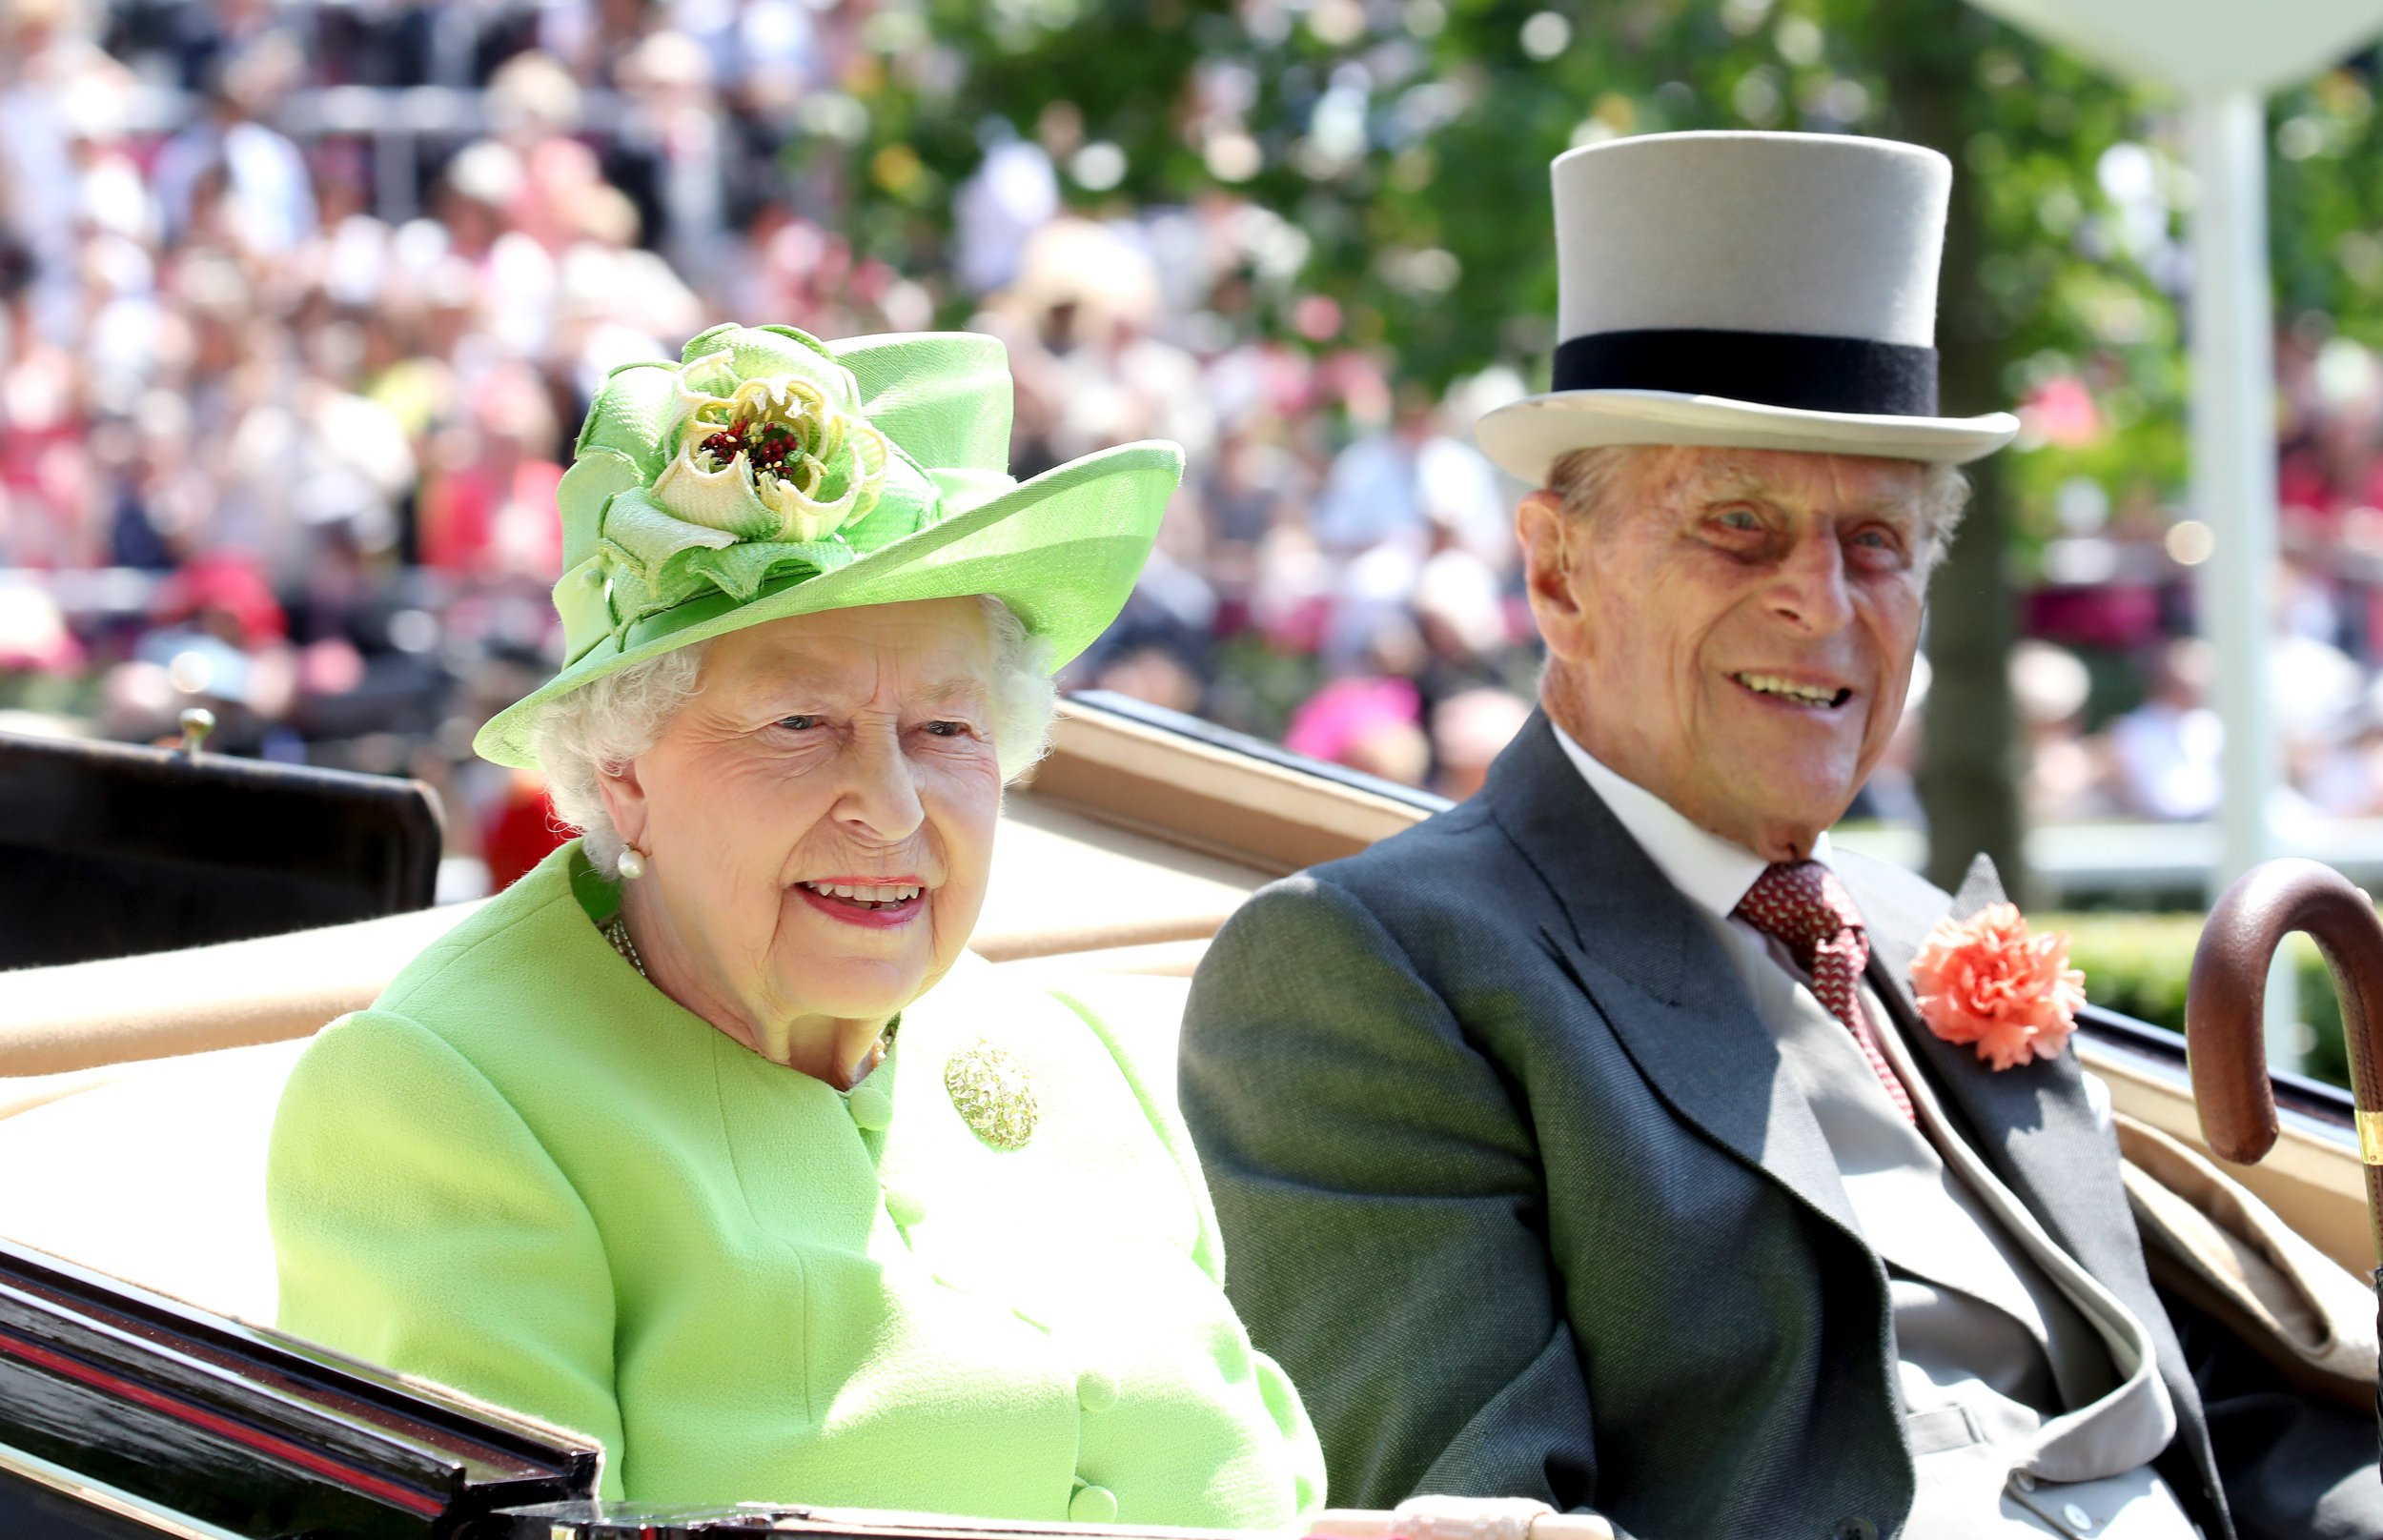 Prince Philip becomes third oldest royal in history